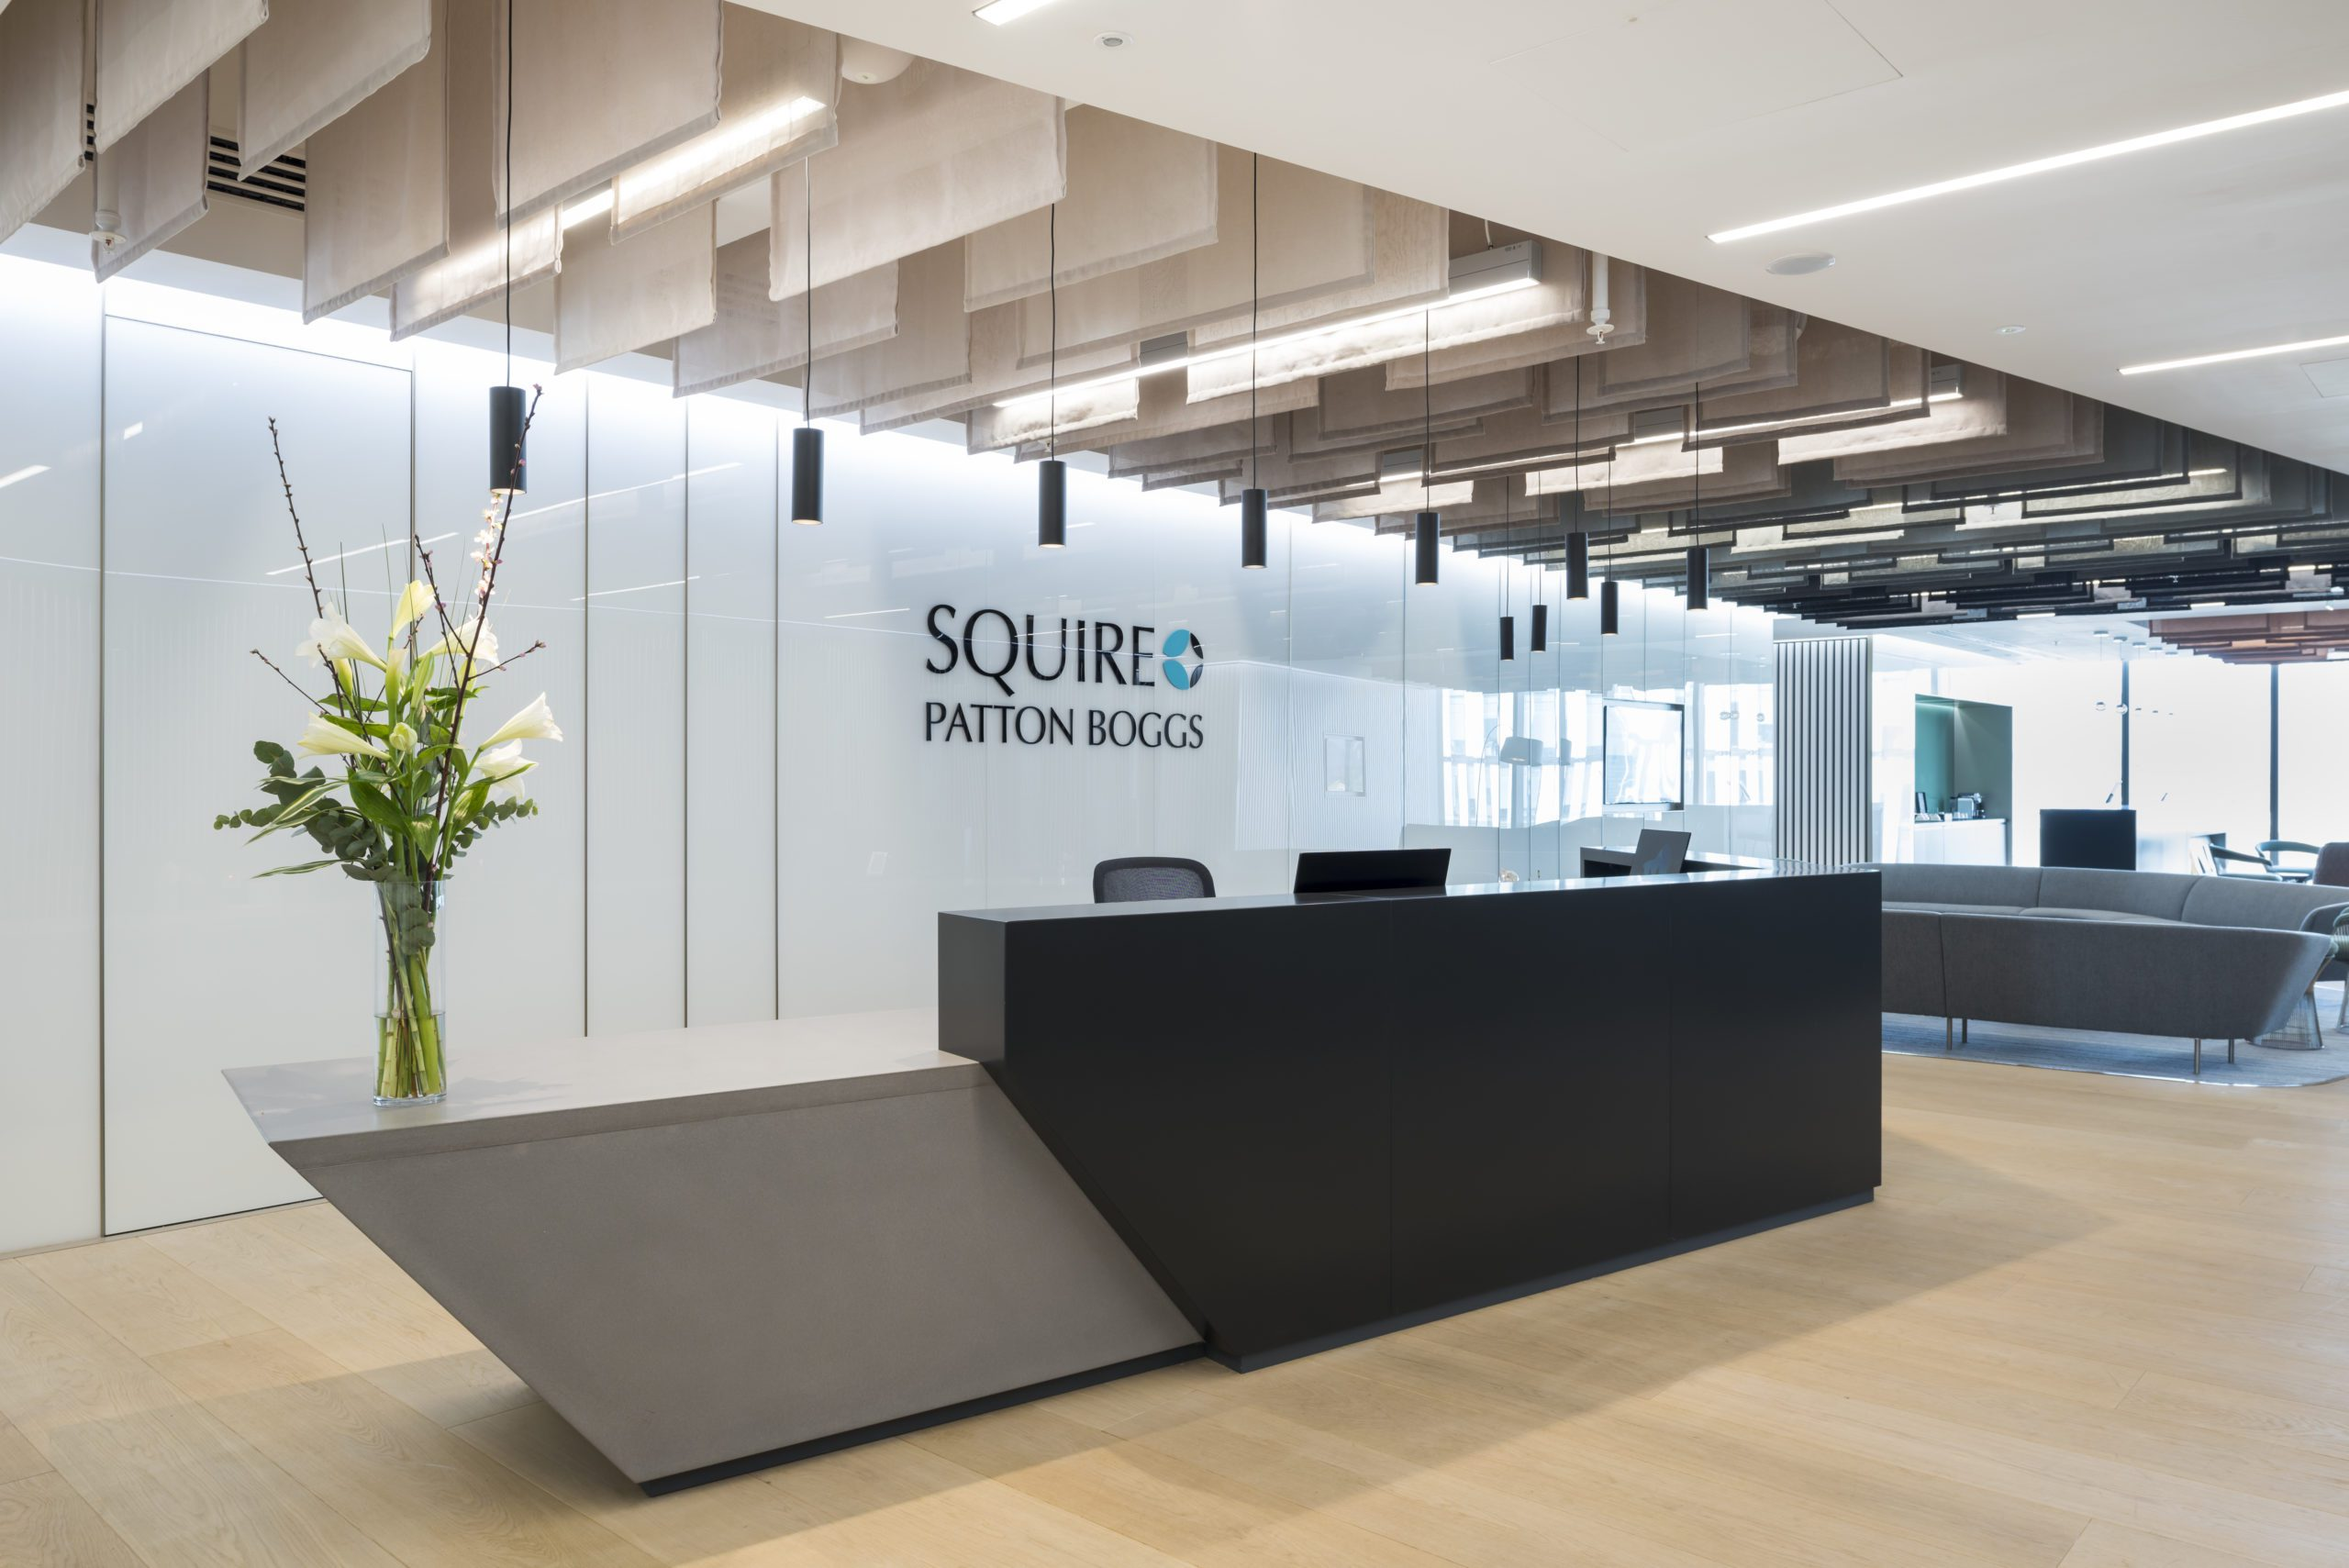 Squire Patton Boggs Manchester Law Firm Case Study